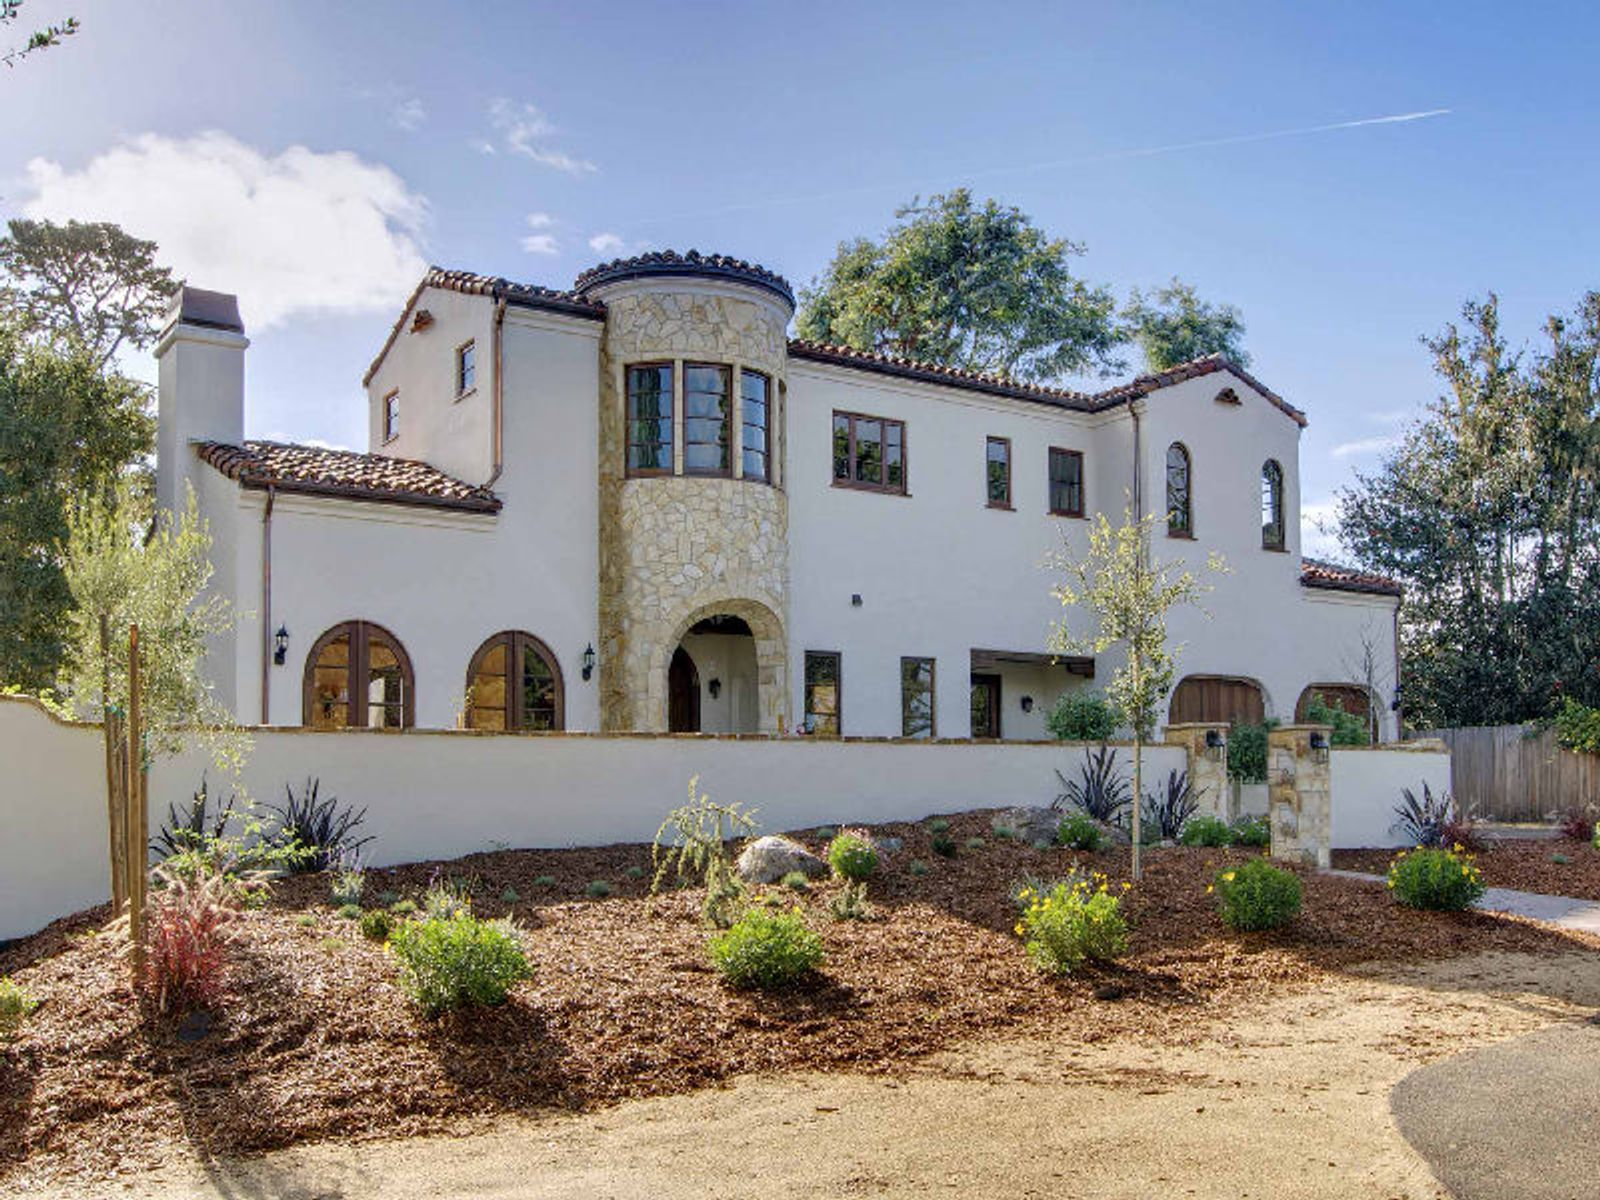 Pebble Beach Mediterranean Class, Pebble Beach CA Single Family Home - Monterey Real Estate